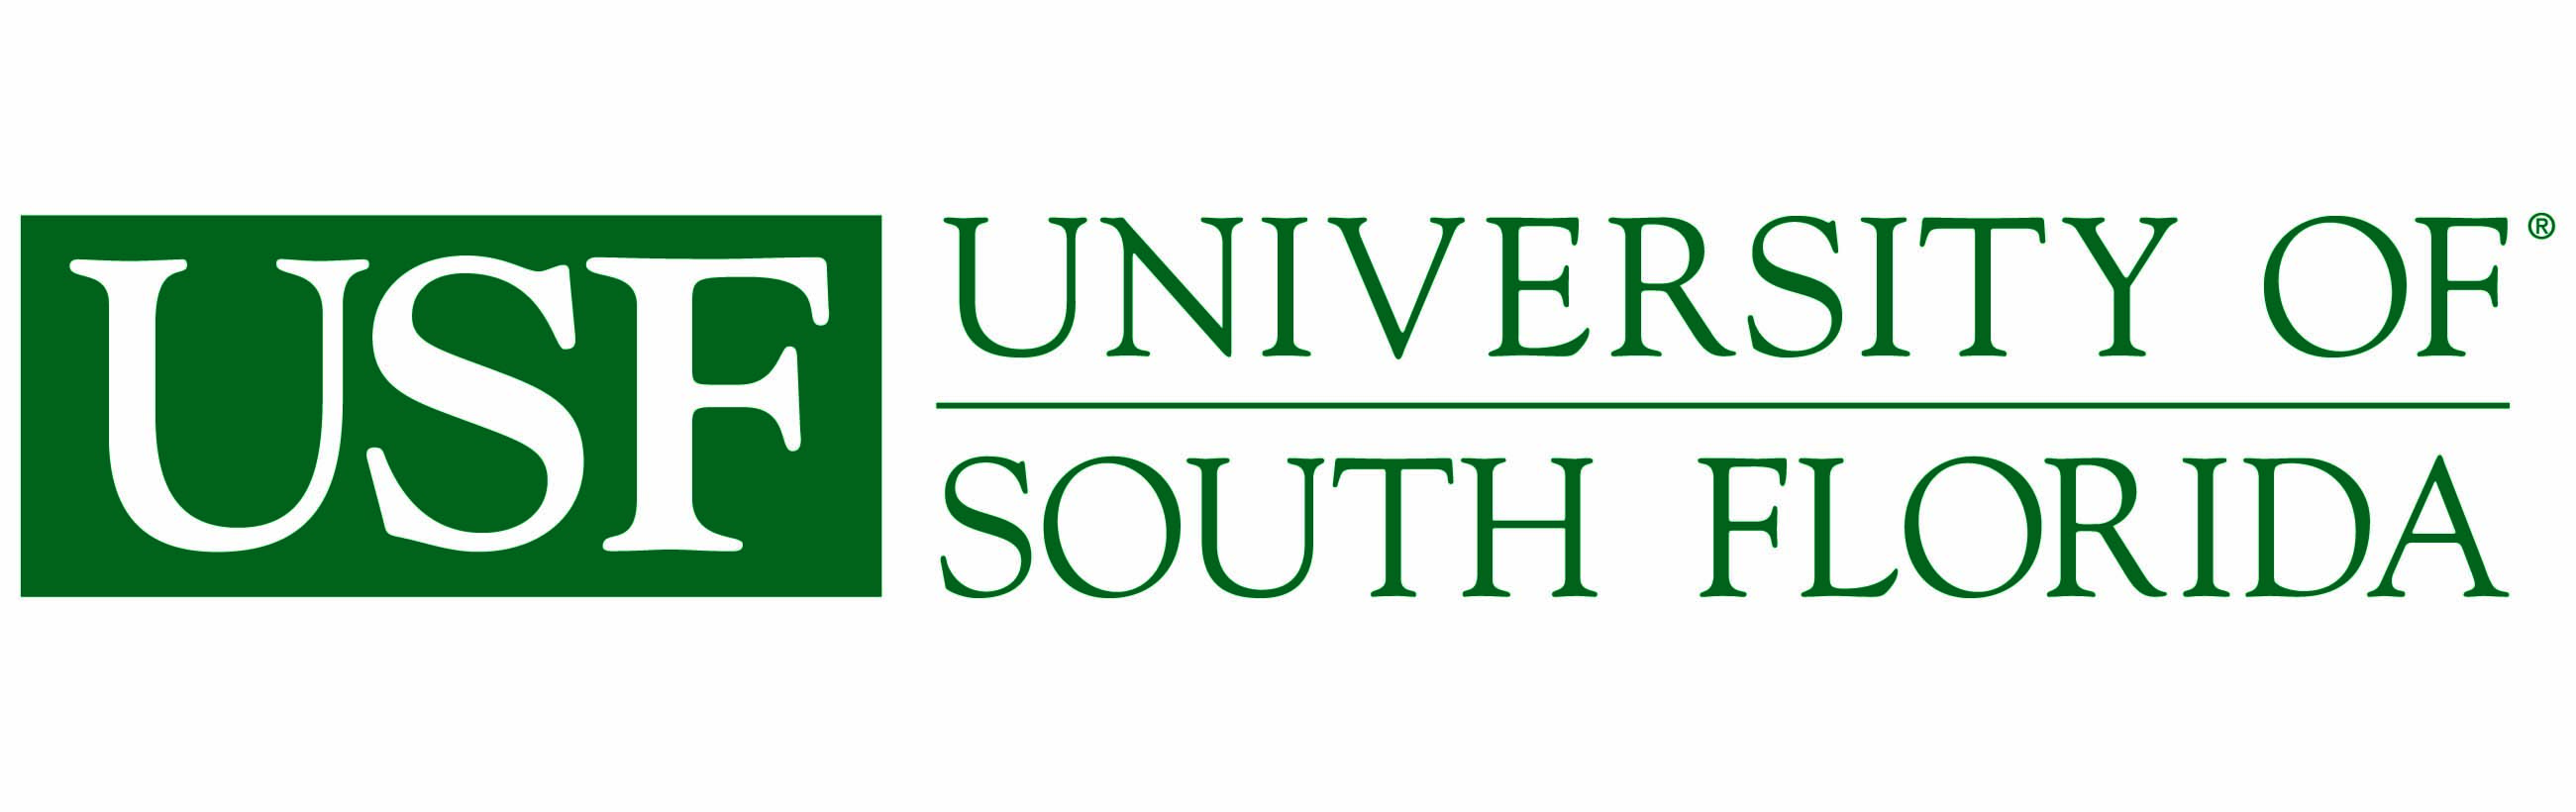 University of south florida essay